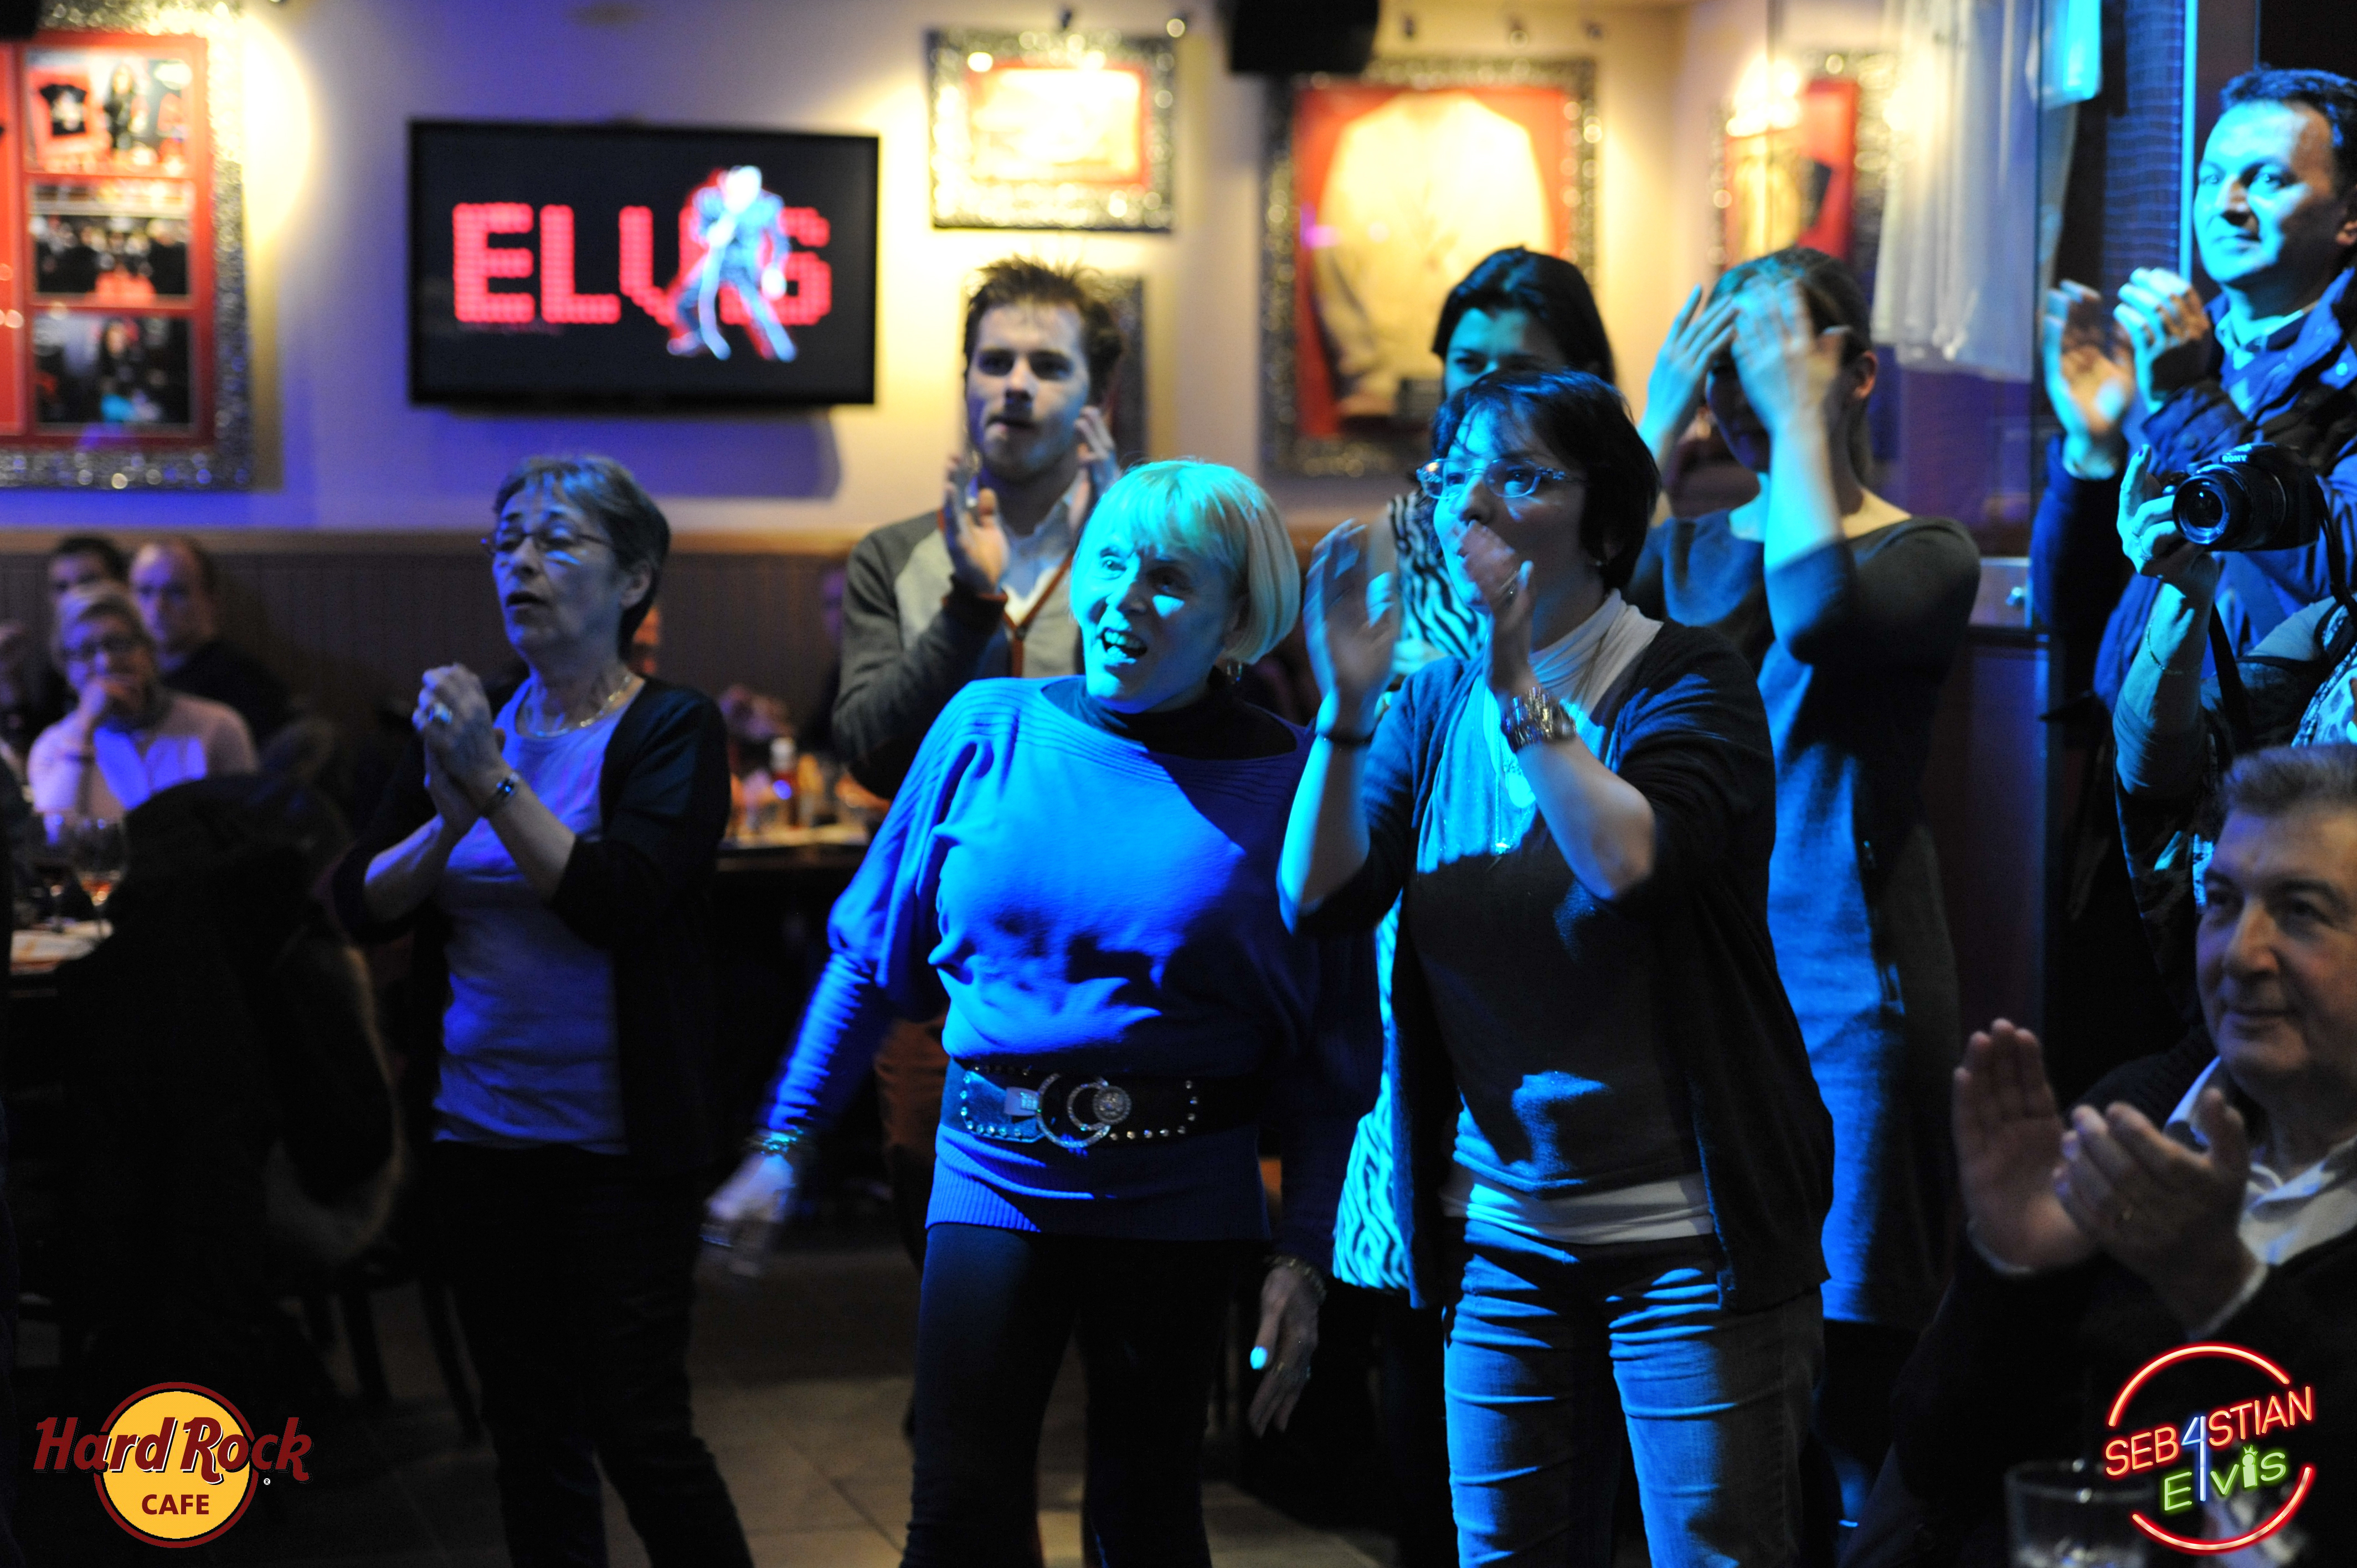 hard-rock-cafe-paris-elvis-night-27 janvier-2016-sebastian-for-elvis-facebook-memorial-show-0103